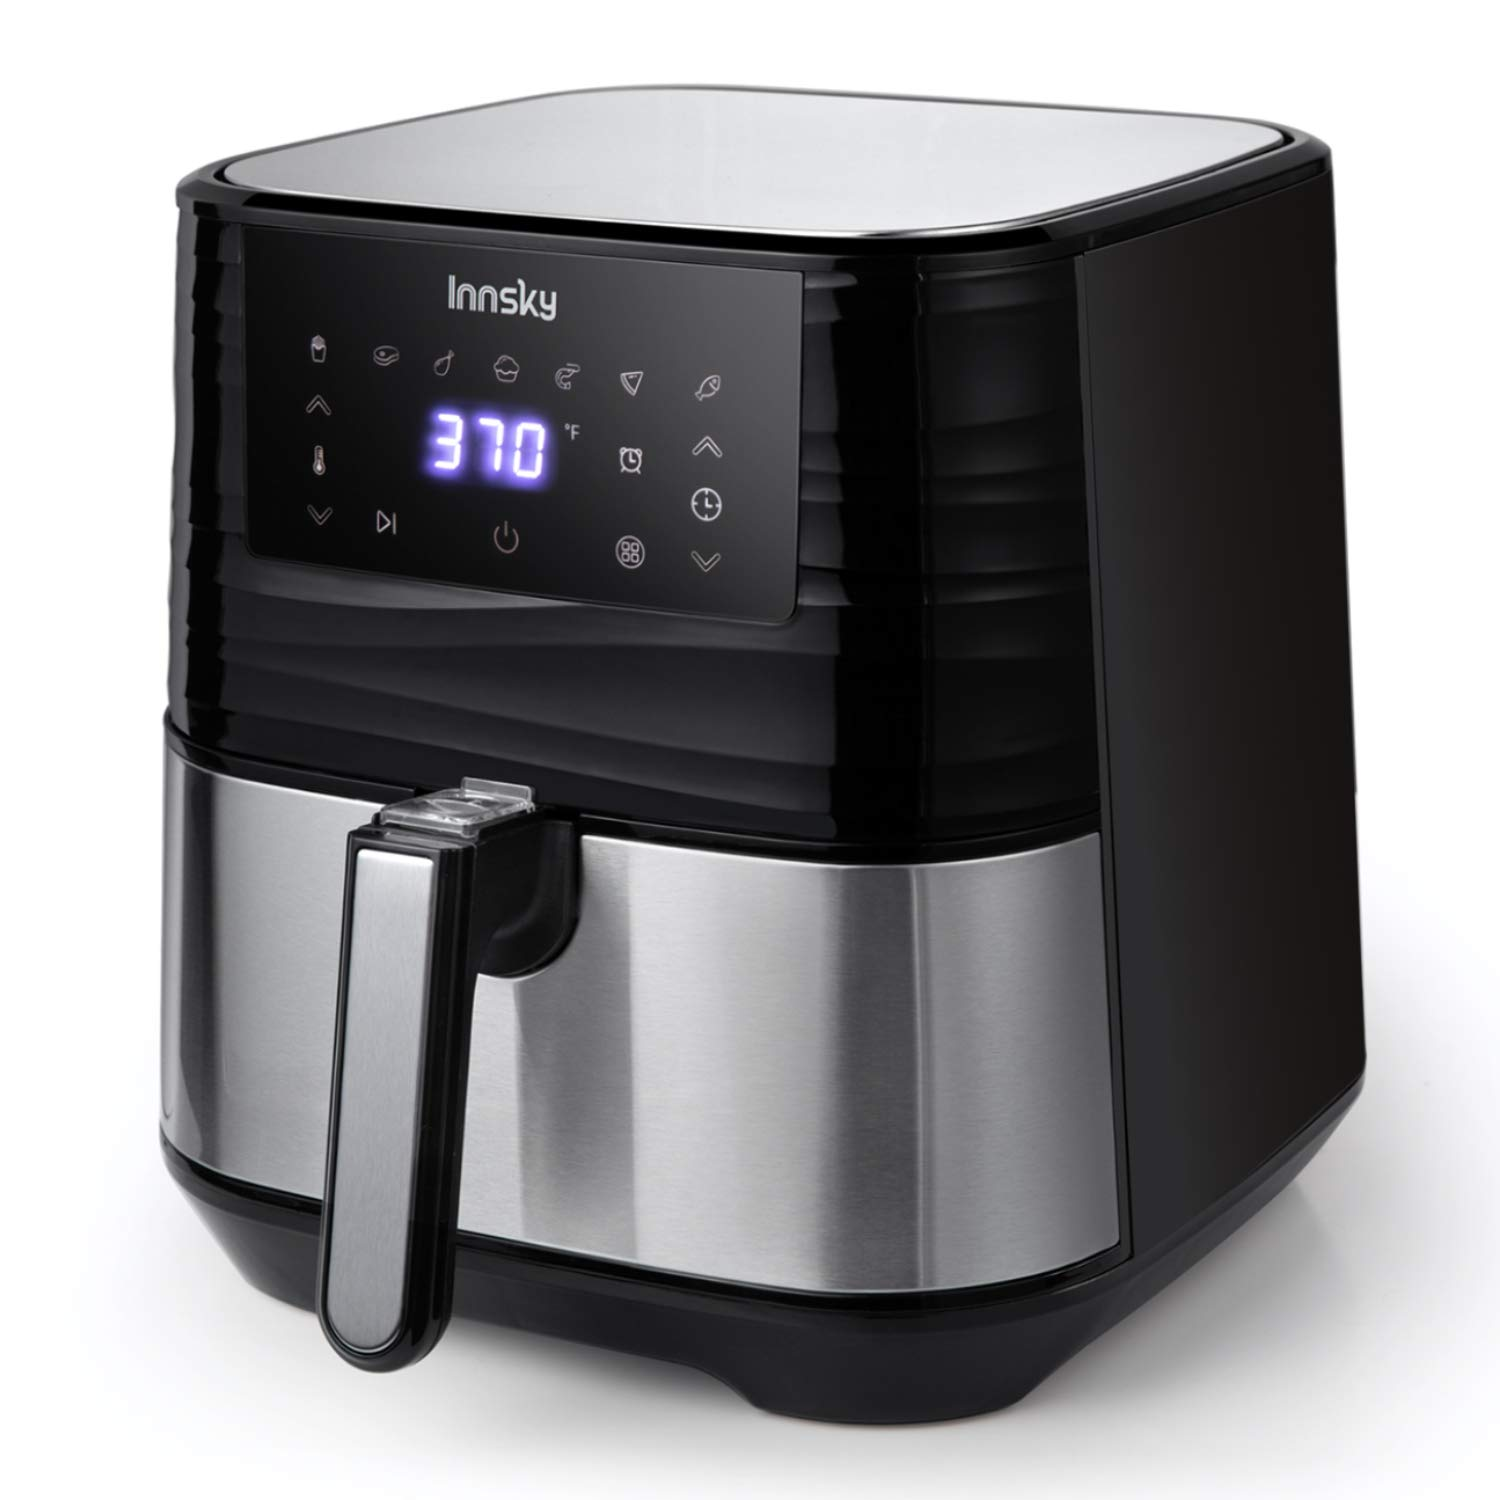 Air Fryer XL, Innsky 5.8QT 1700W Electric Stainless Steel Air Fryers Oven Oilless Cooker, 7 Cooking Presets, Preheat & LED Digital Touchscreen, Nonstick Basket, 18+3 Months Warranty (Recipe book Included)